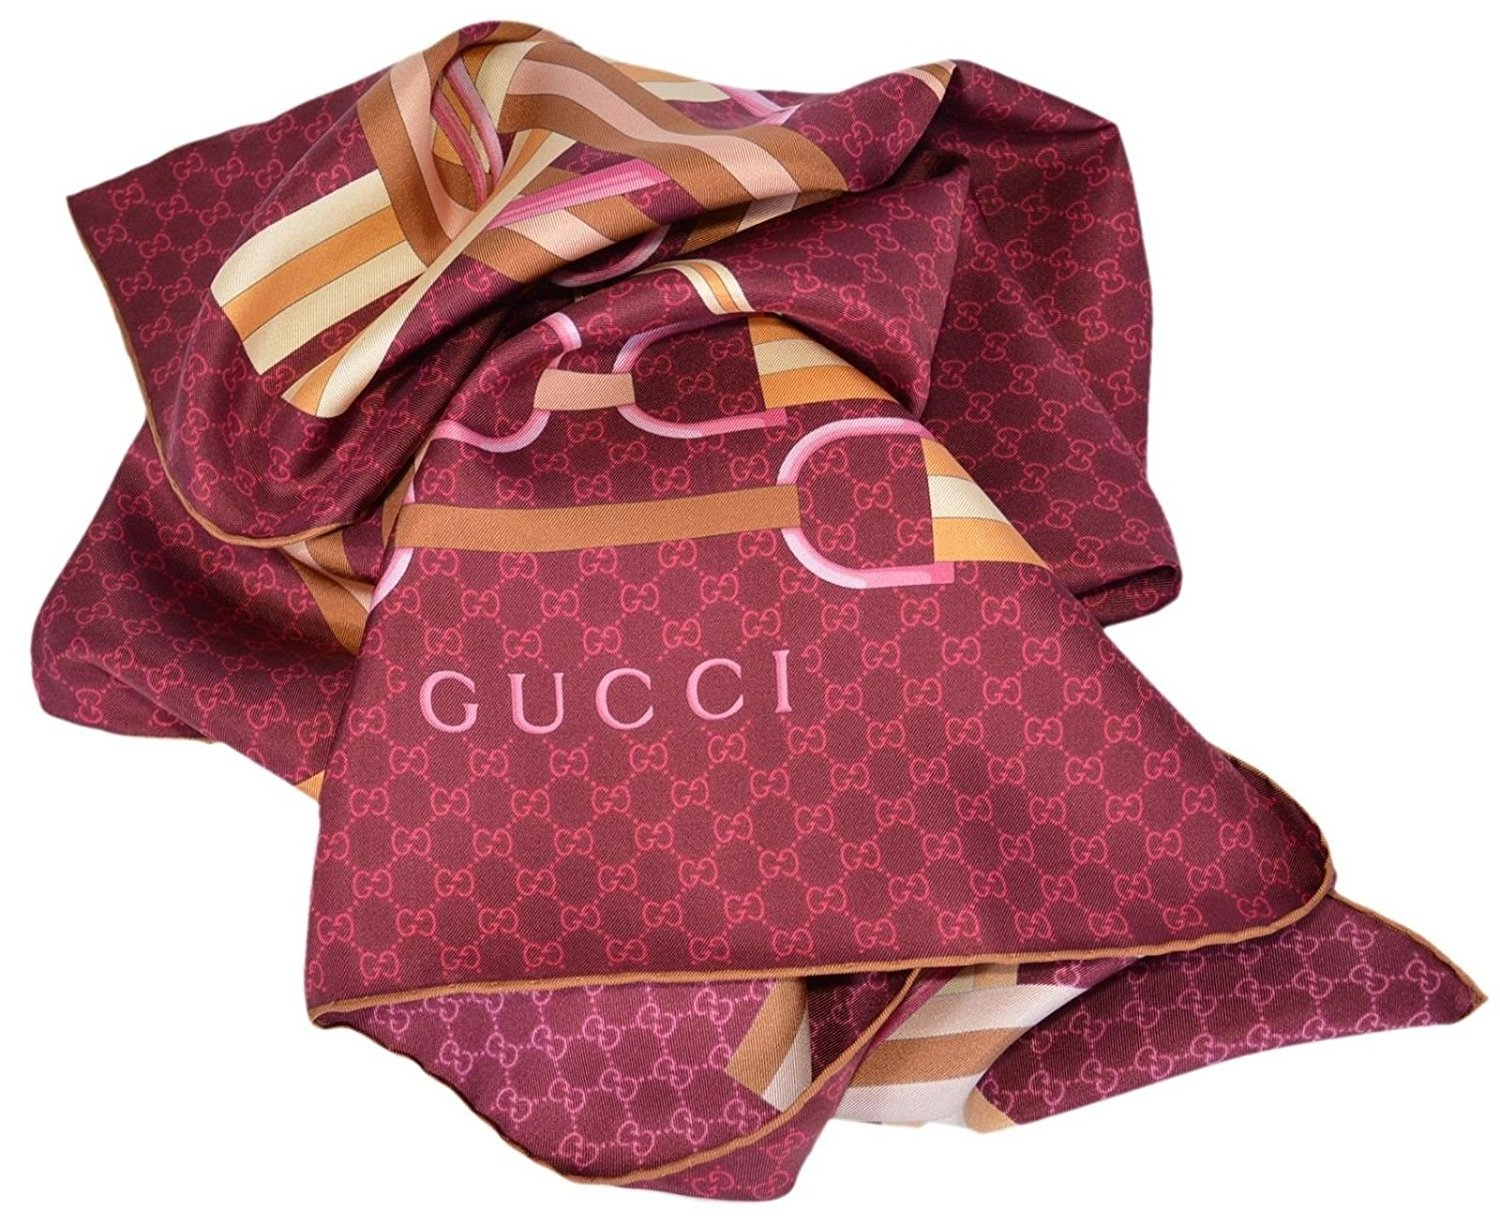 Gucci Horsebit Web Belts GG Guccissima Silk Twill Neck Scarf (Bordeaux)